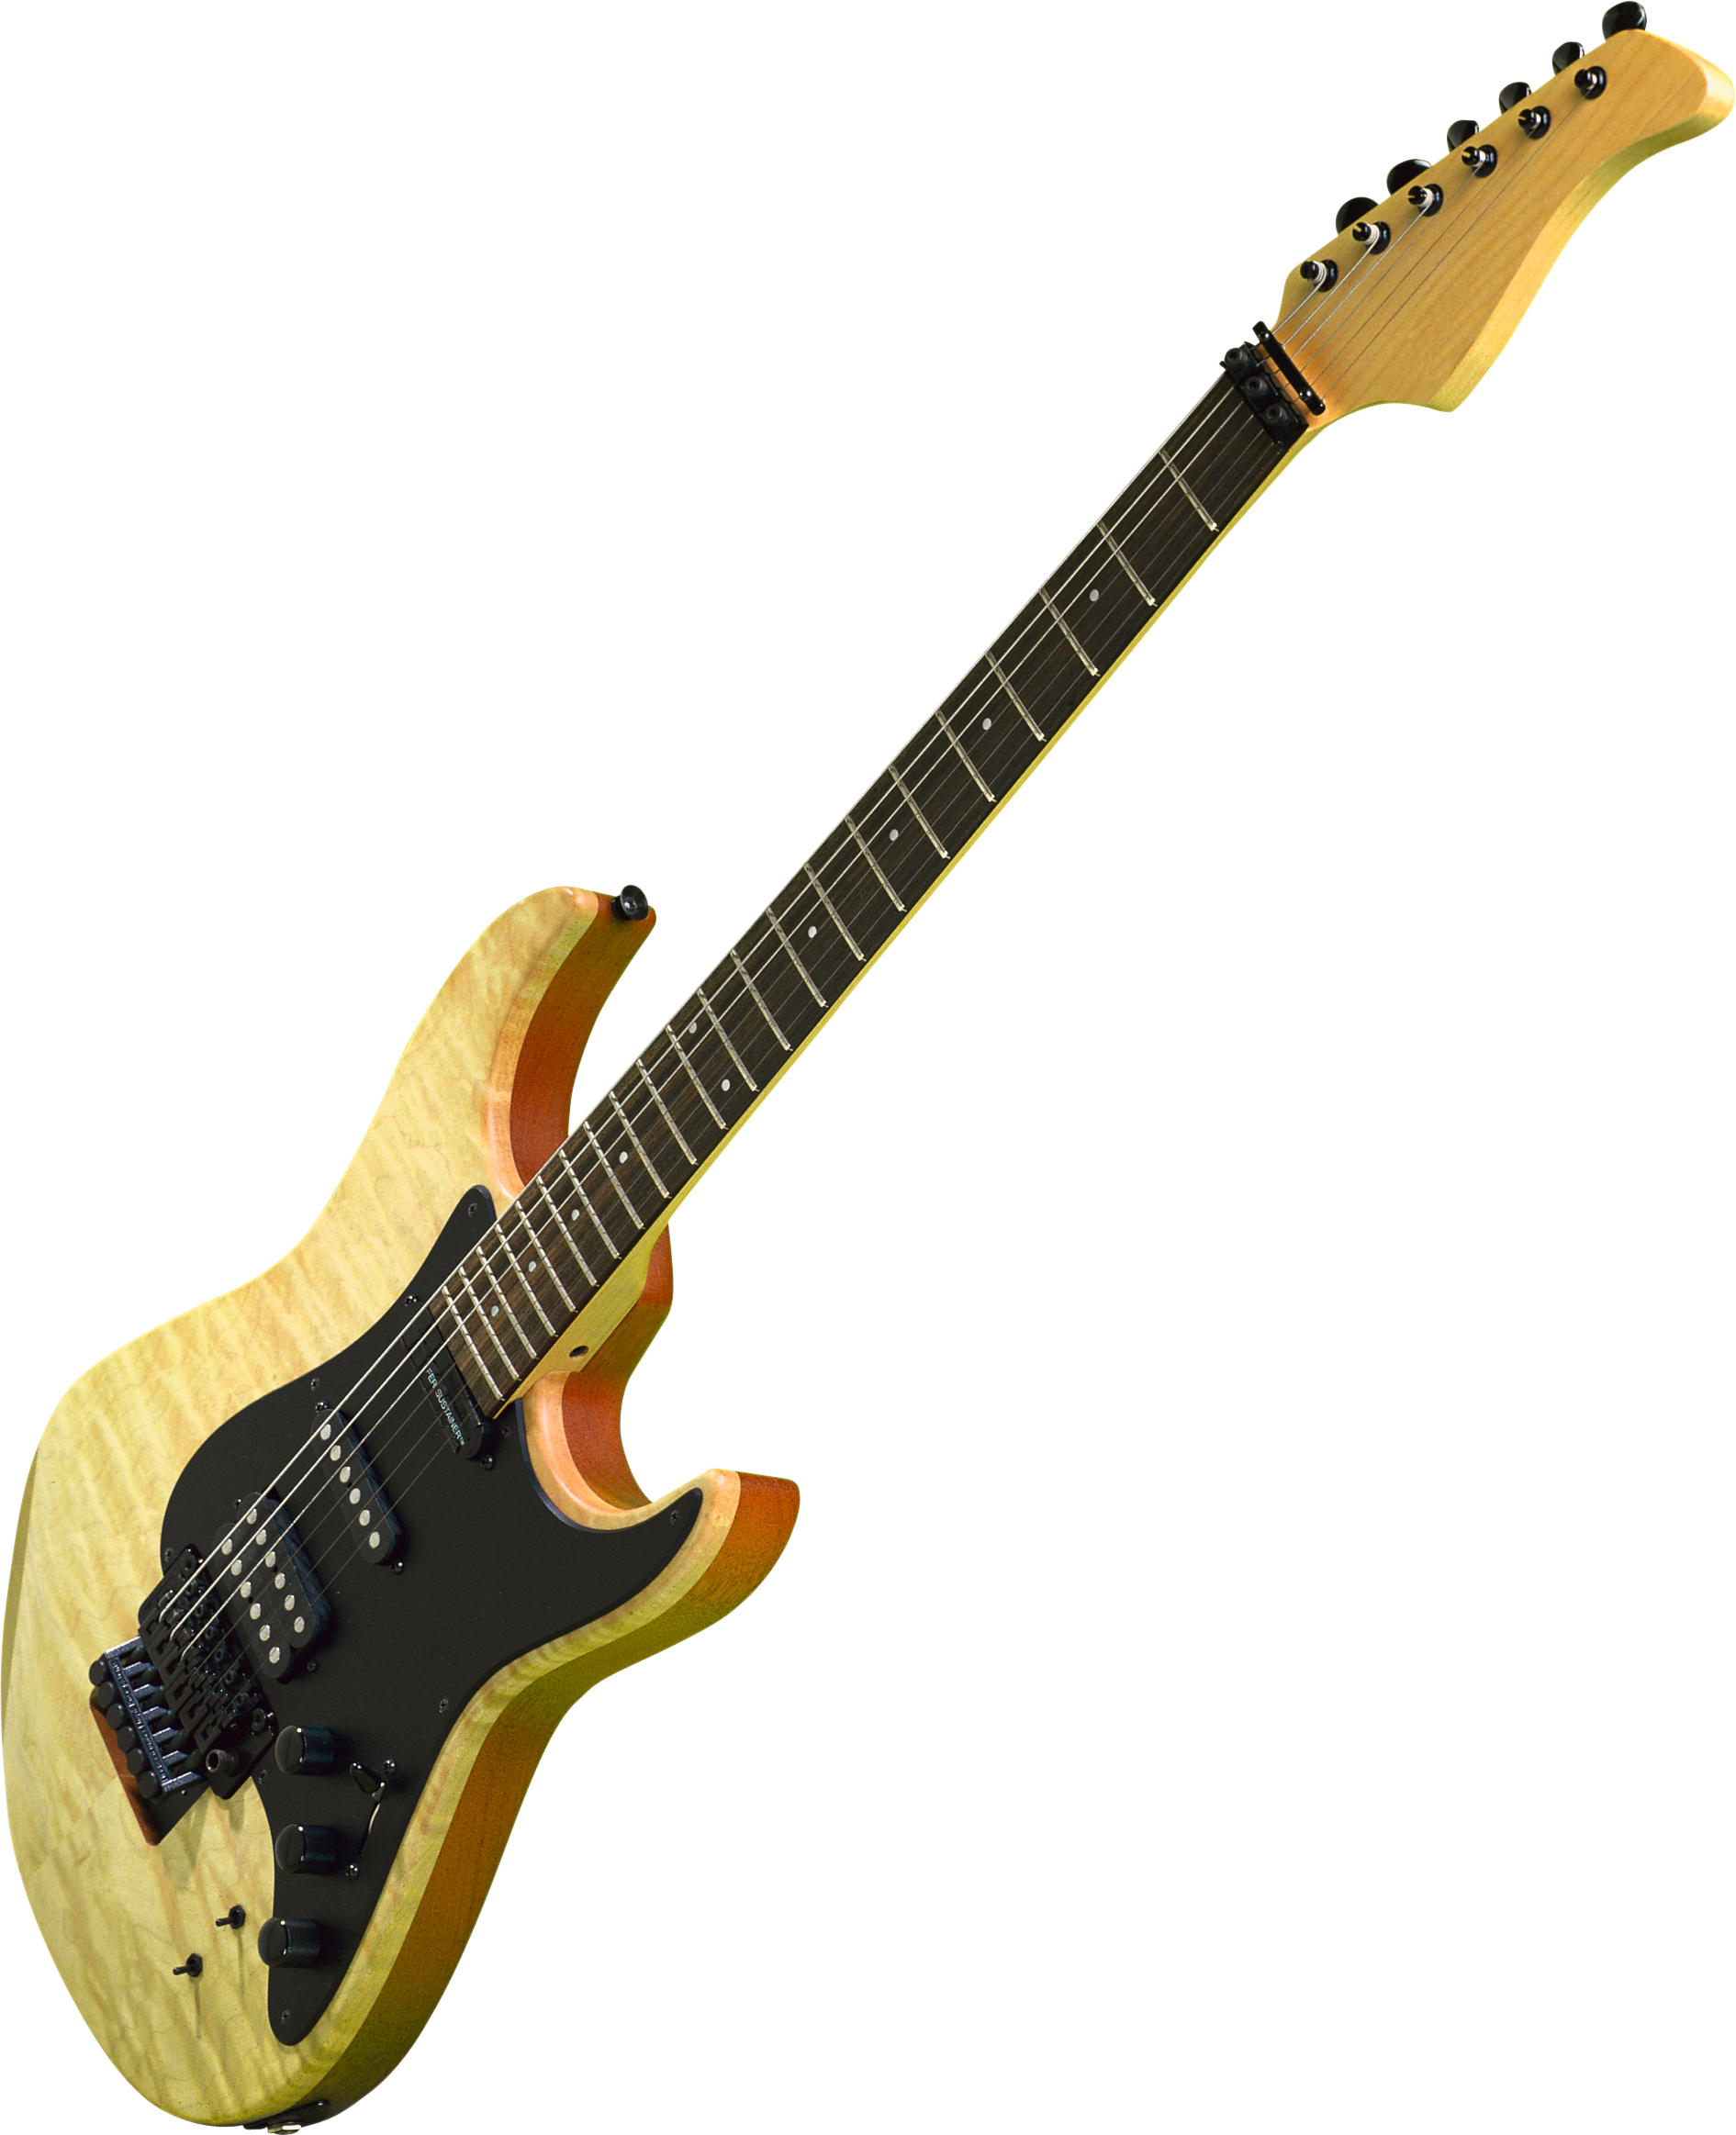 Guitar clipart blue object. Png images free picture